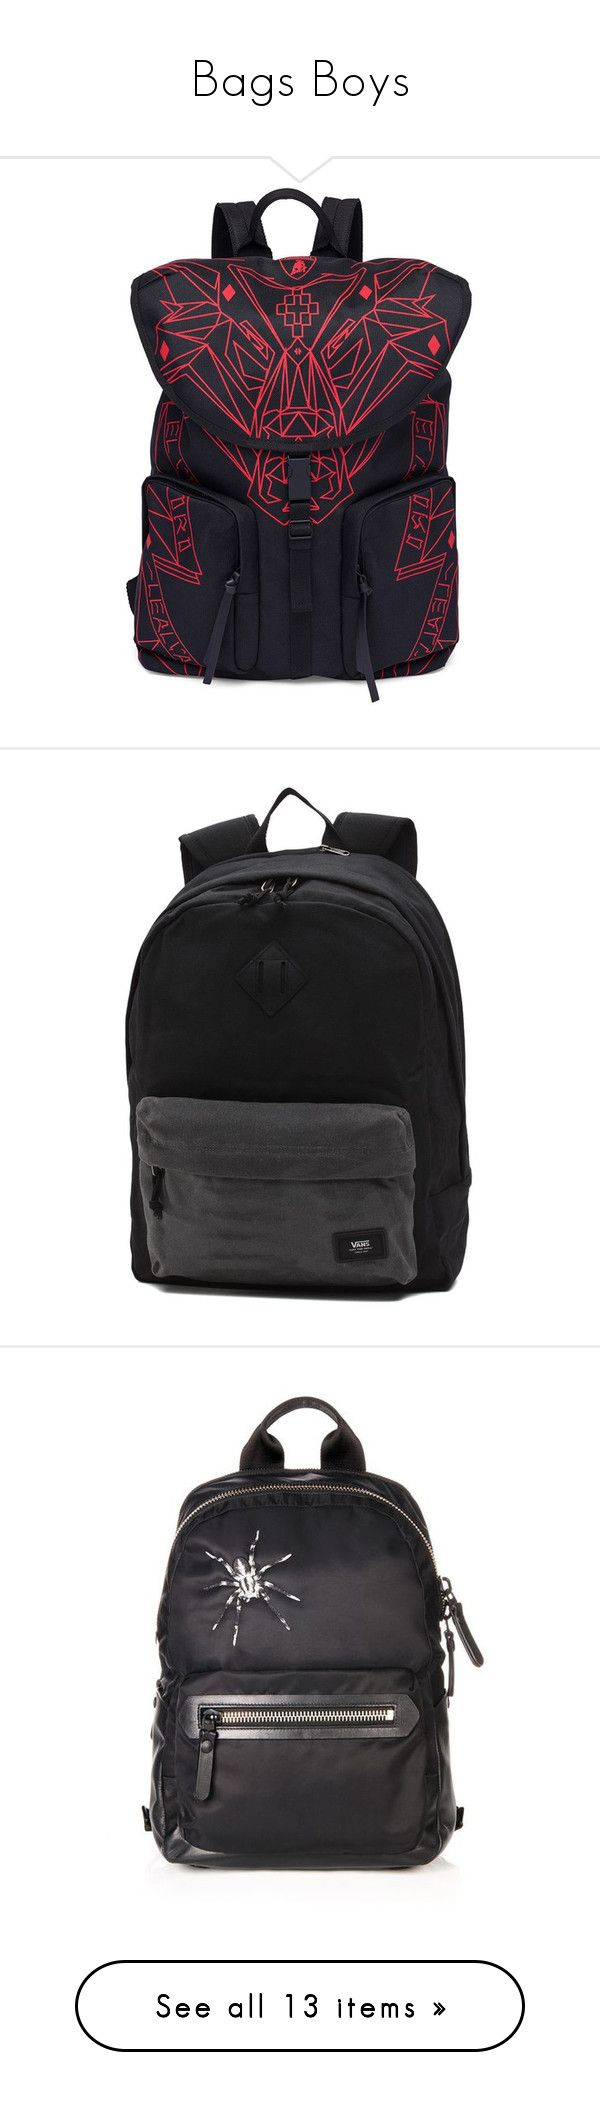 """Bags Boys"" by kokoxpops ❤ liked on Polyvore featuring men's fashion, men's bags, men's backpacks, apparel & accessories, black red, mens one strap backpack, mens leather backpack, mens backpack, bags and black"